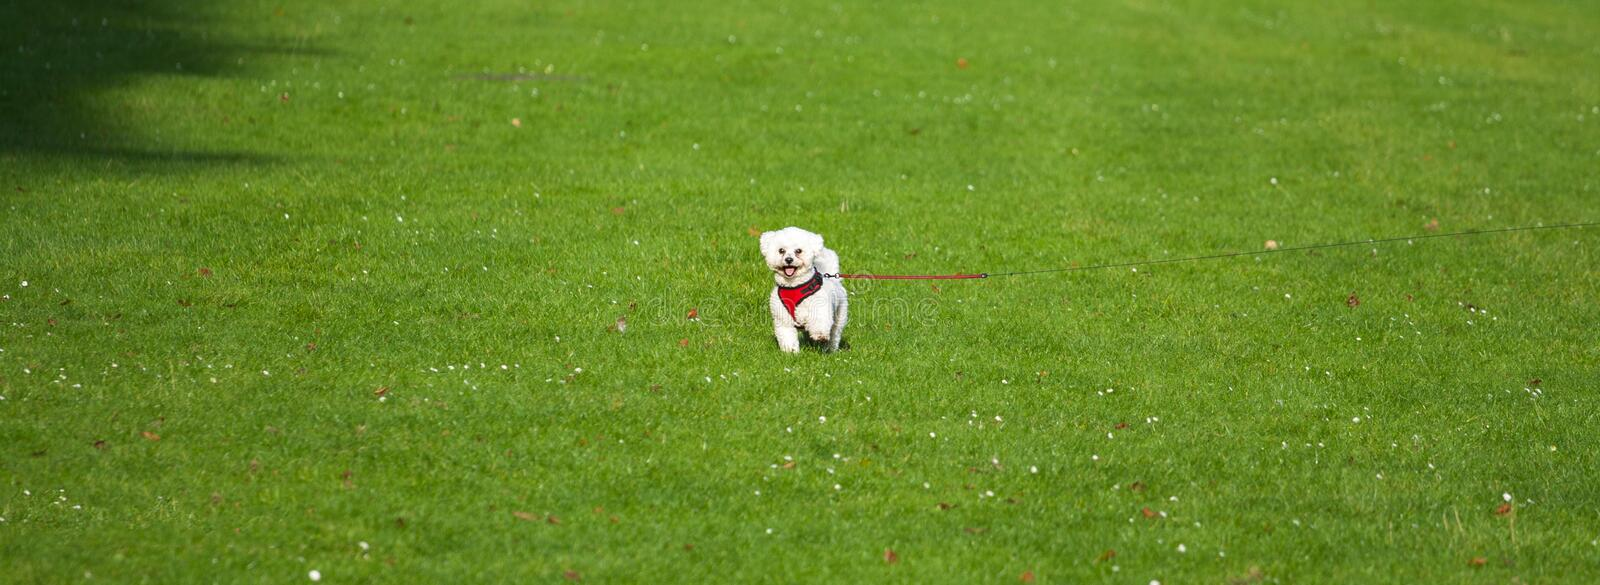 Small dog in the middle of the field stock photos